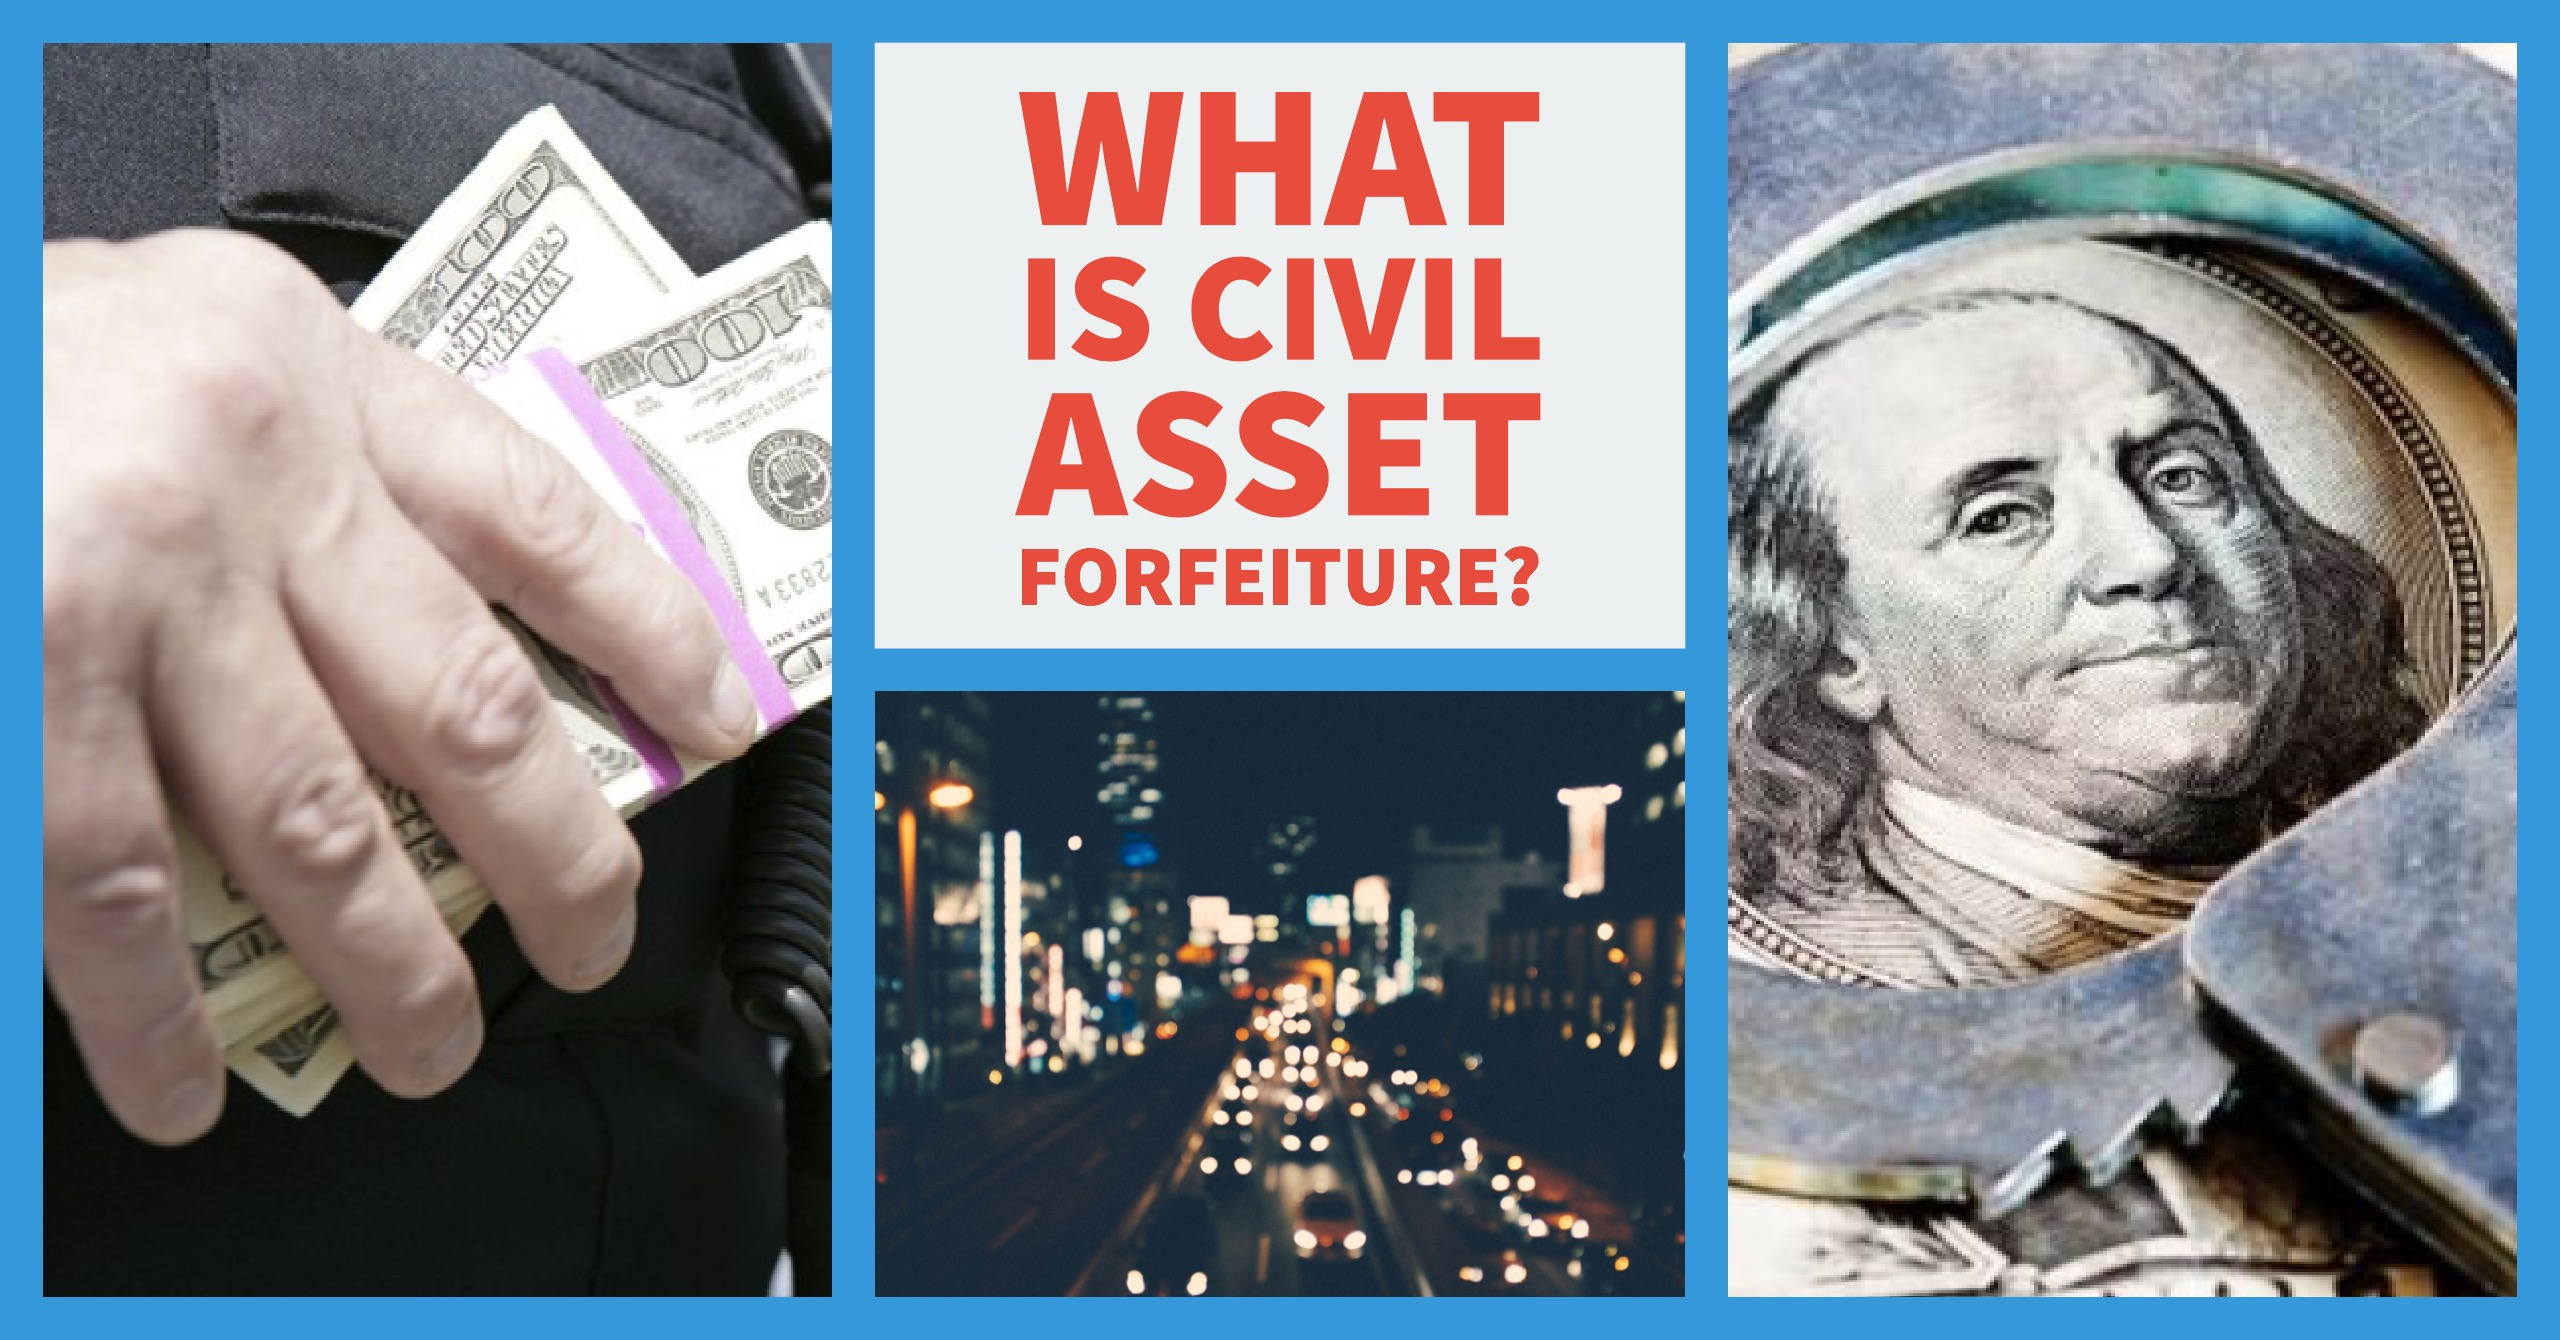 What is Civil Asset Forfeiture?